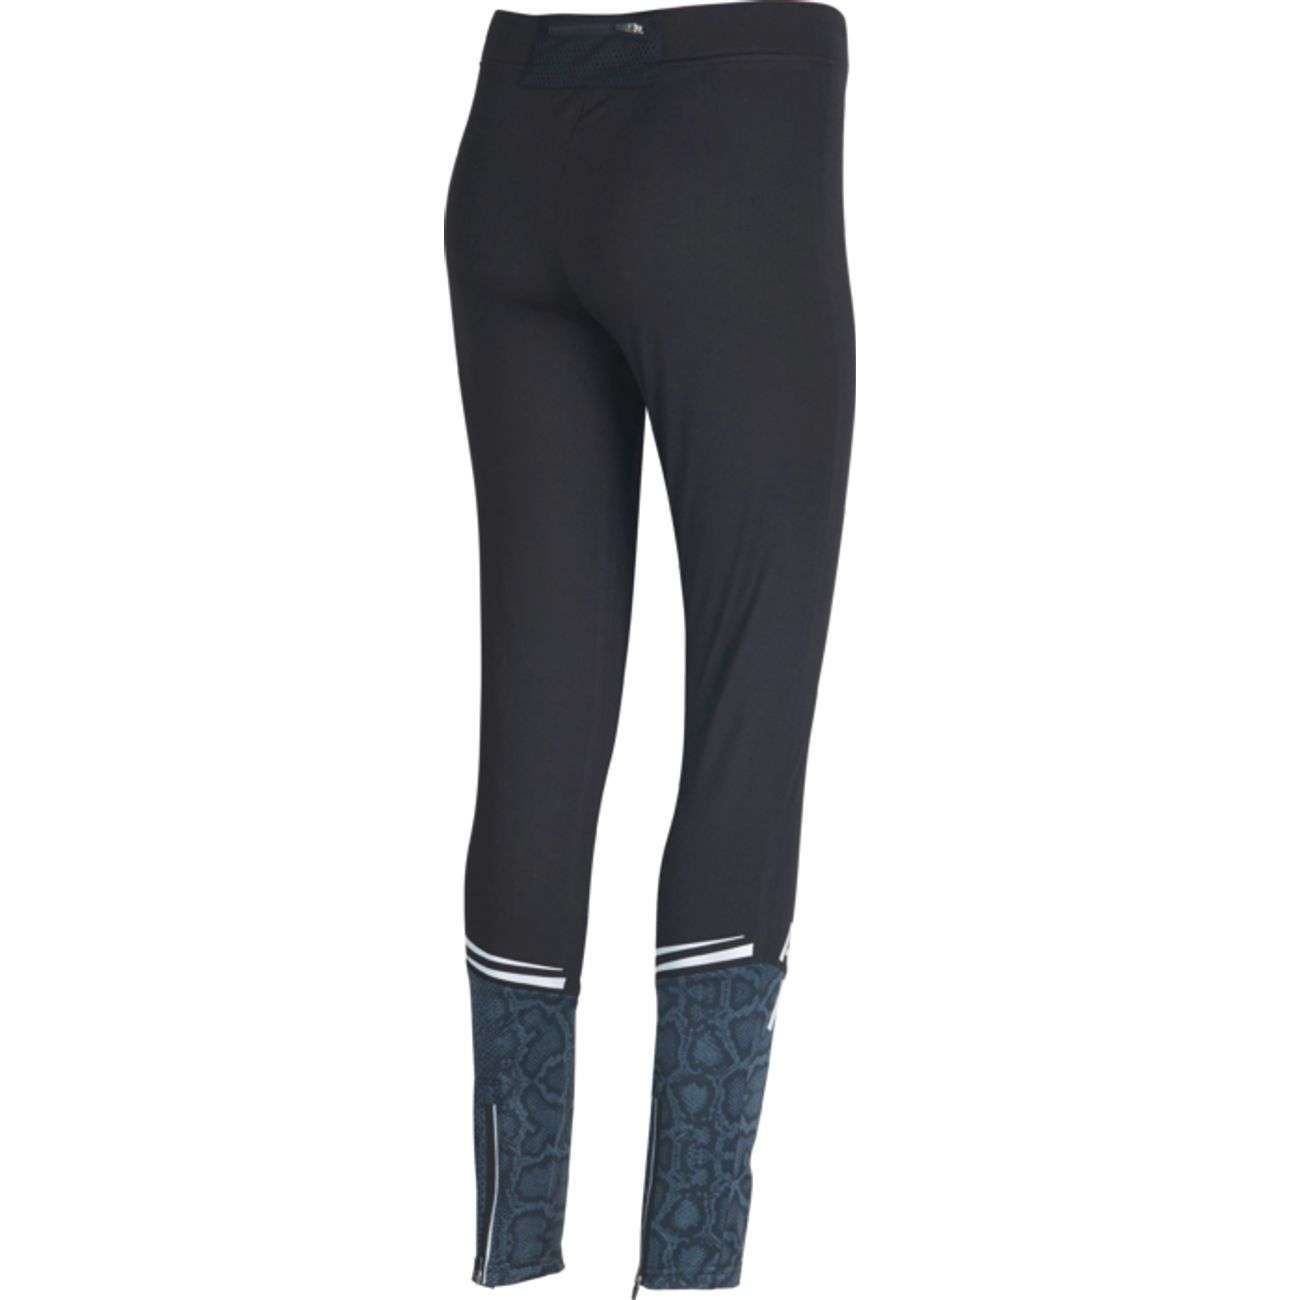 COLLANT running femme ATHLITECH DARLENE COL CHAUD